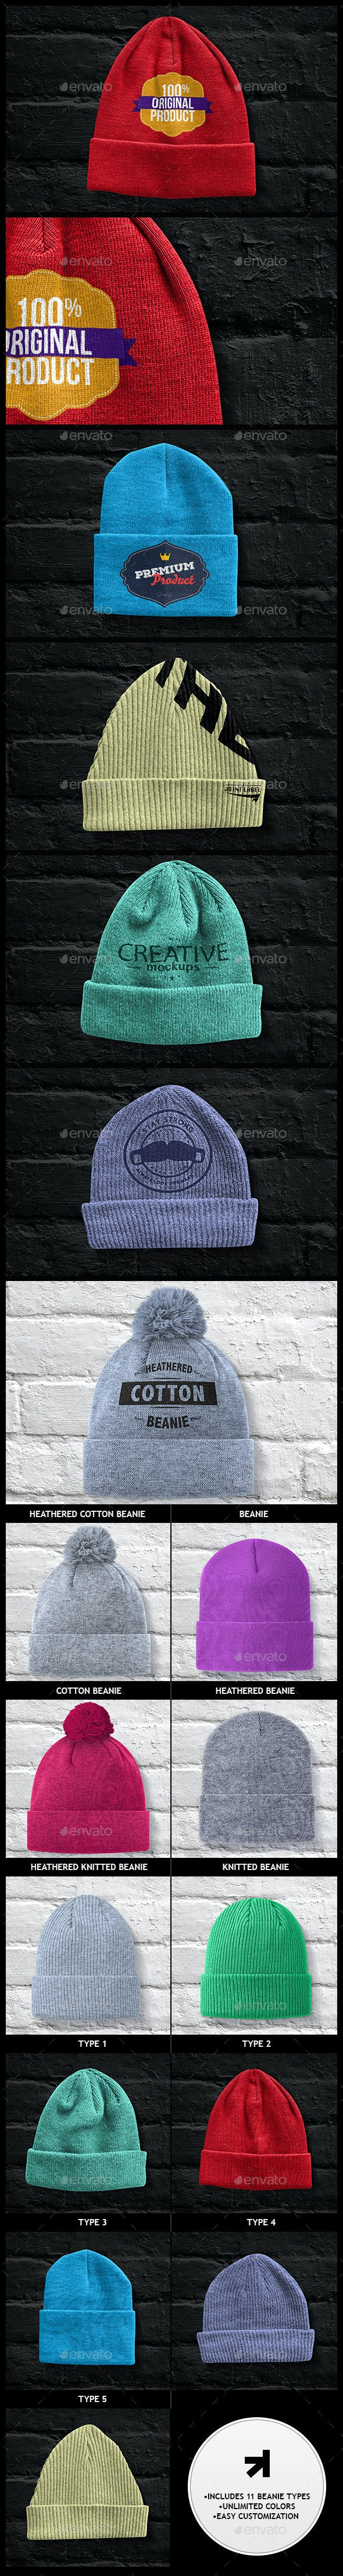 Beanies Pack Mock Up - Apparel Product Mock-Ups